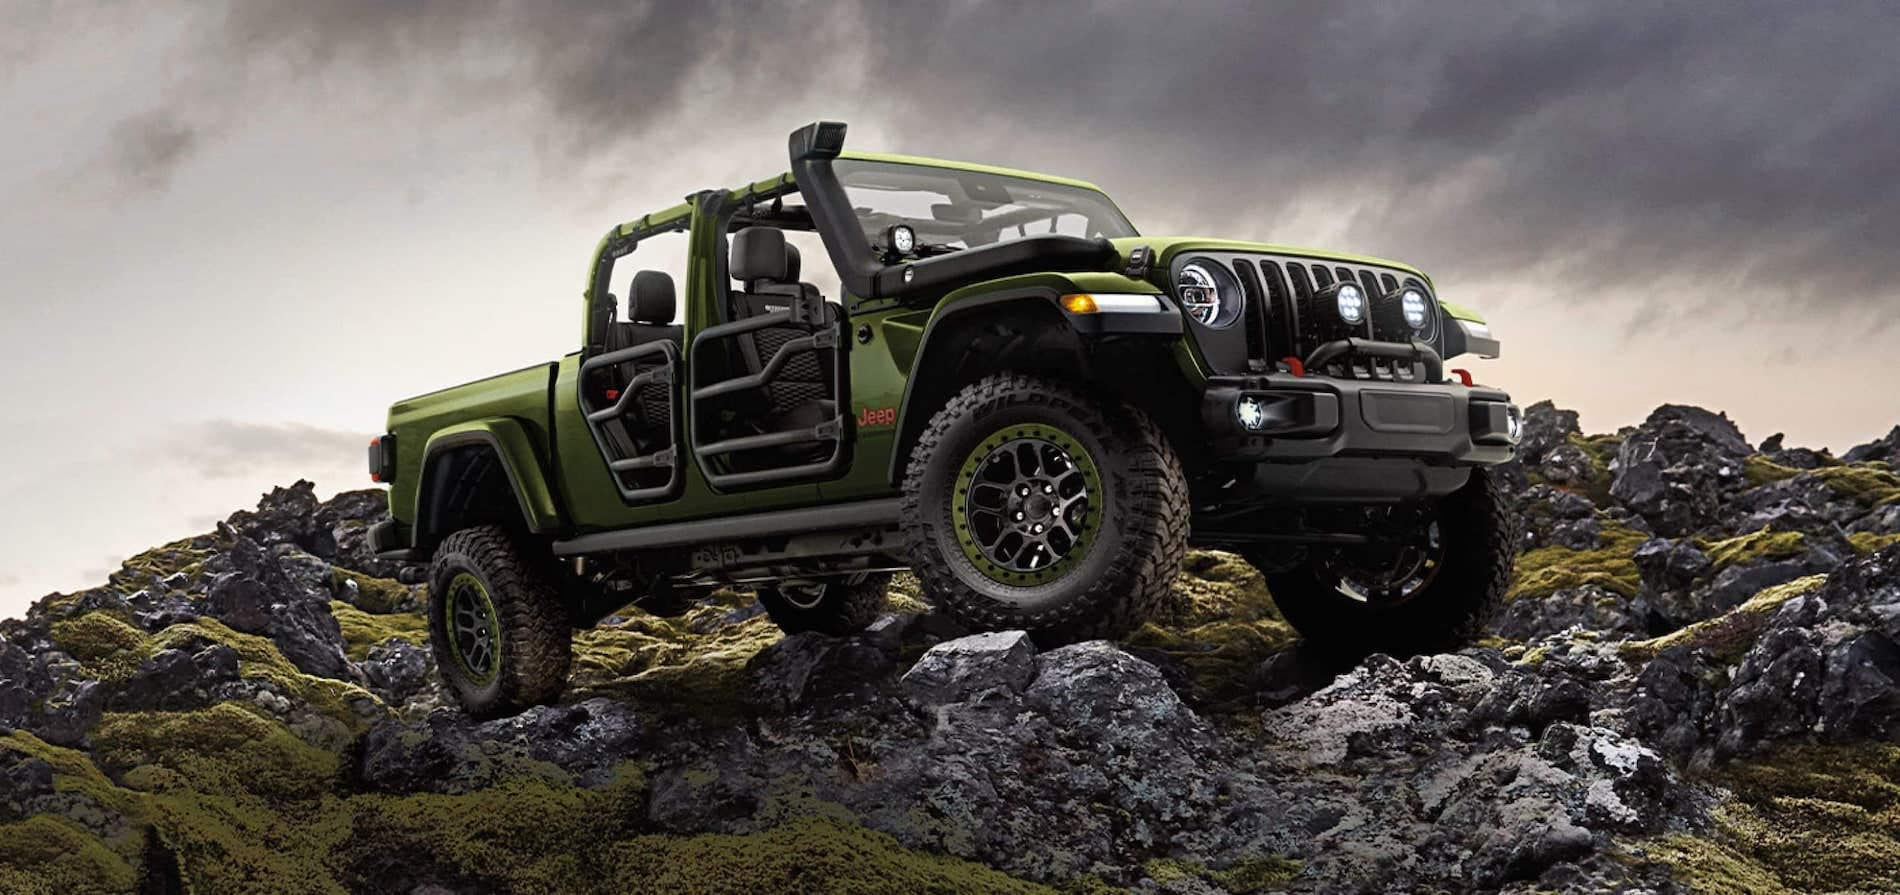 2021 Jeep Gladiator Safety Features Springfield, VA